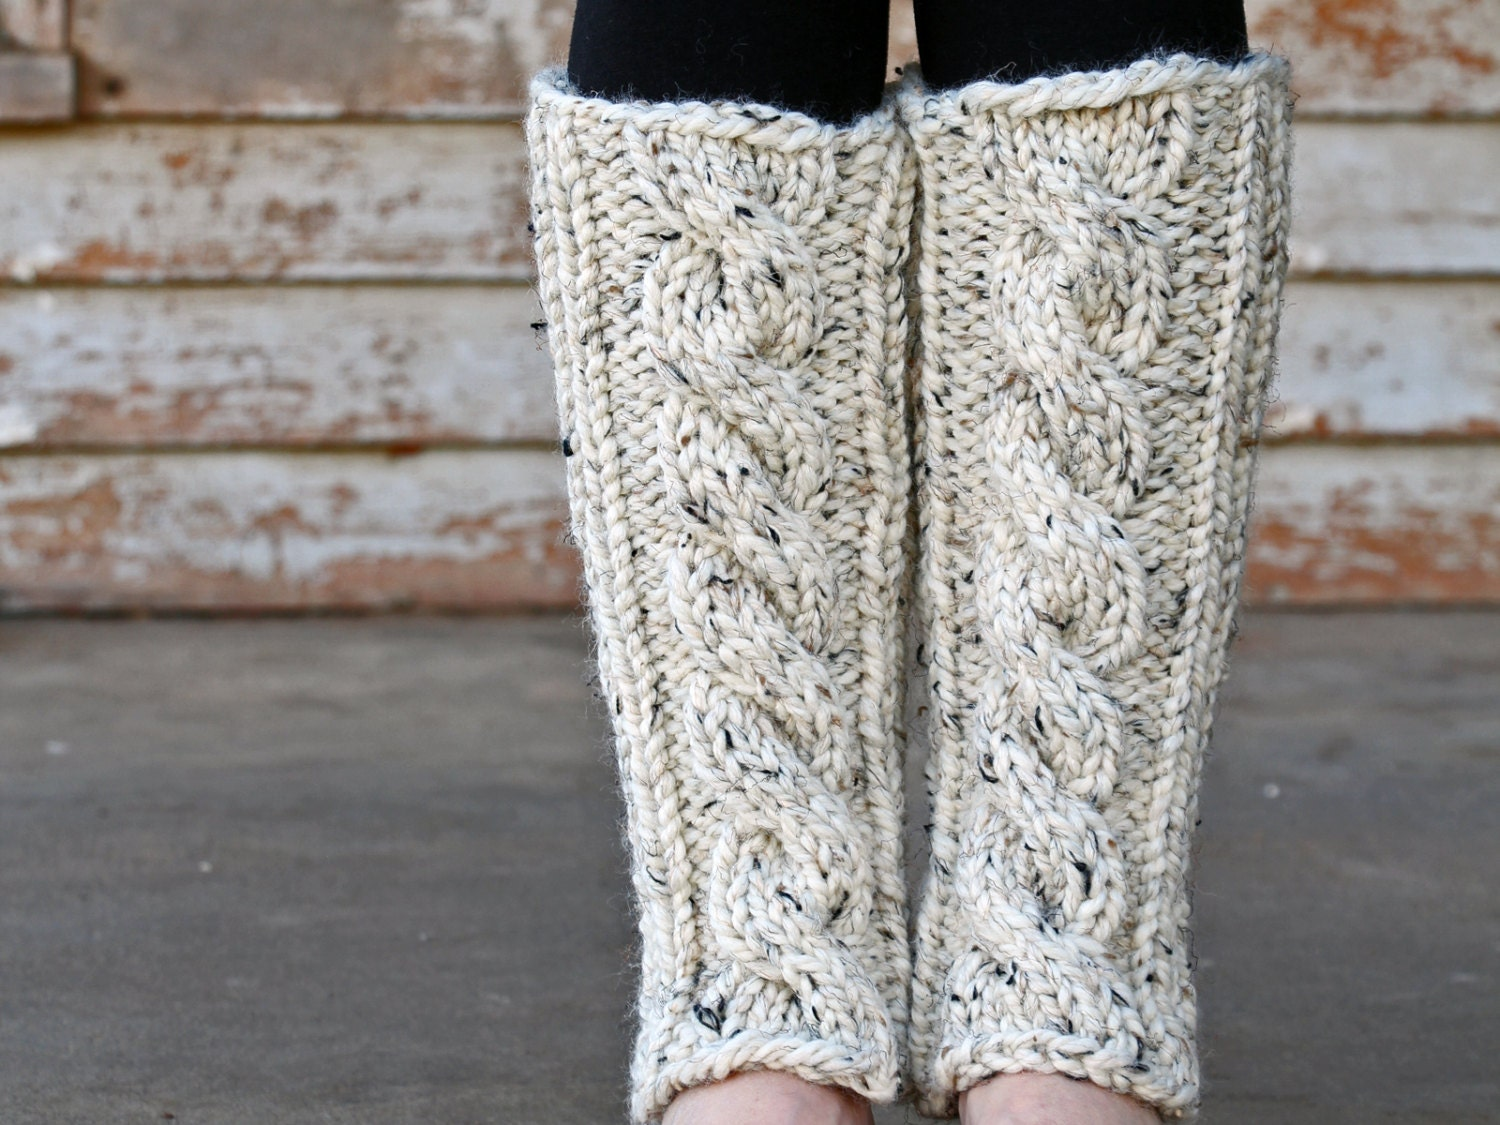 Knit Leg Warmer Patterns Free : Cable Knit Leg Warmers Knitting PATTERN INVENTIVENESS a